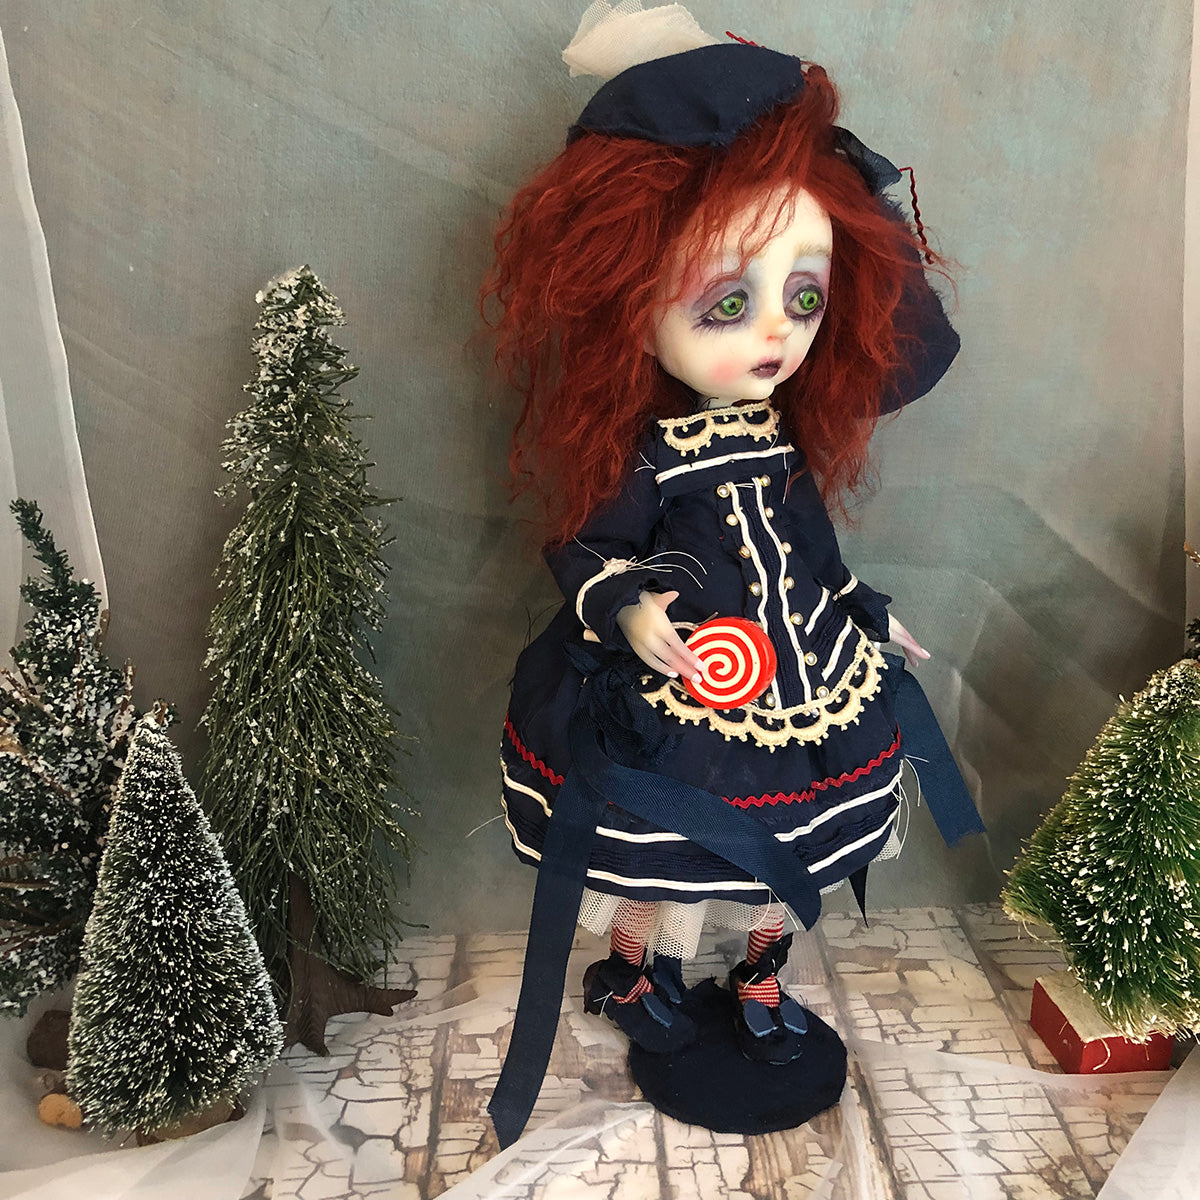 Presley shabby victorian style Winter OOAK Art Doll LuLusApple